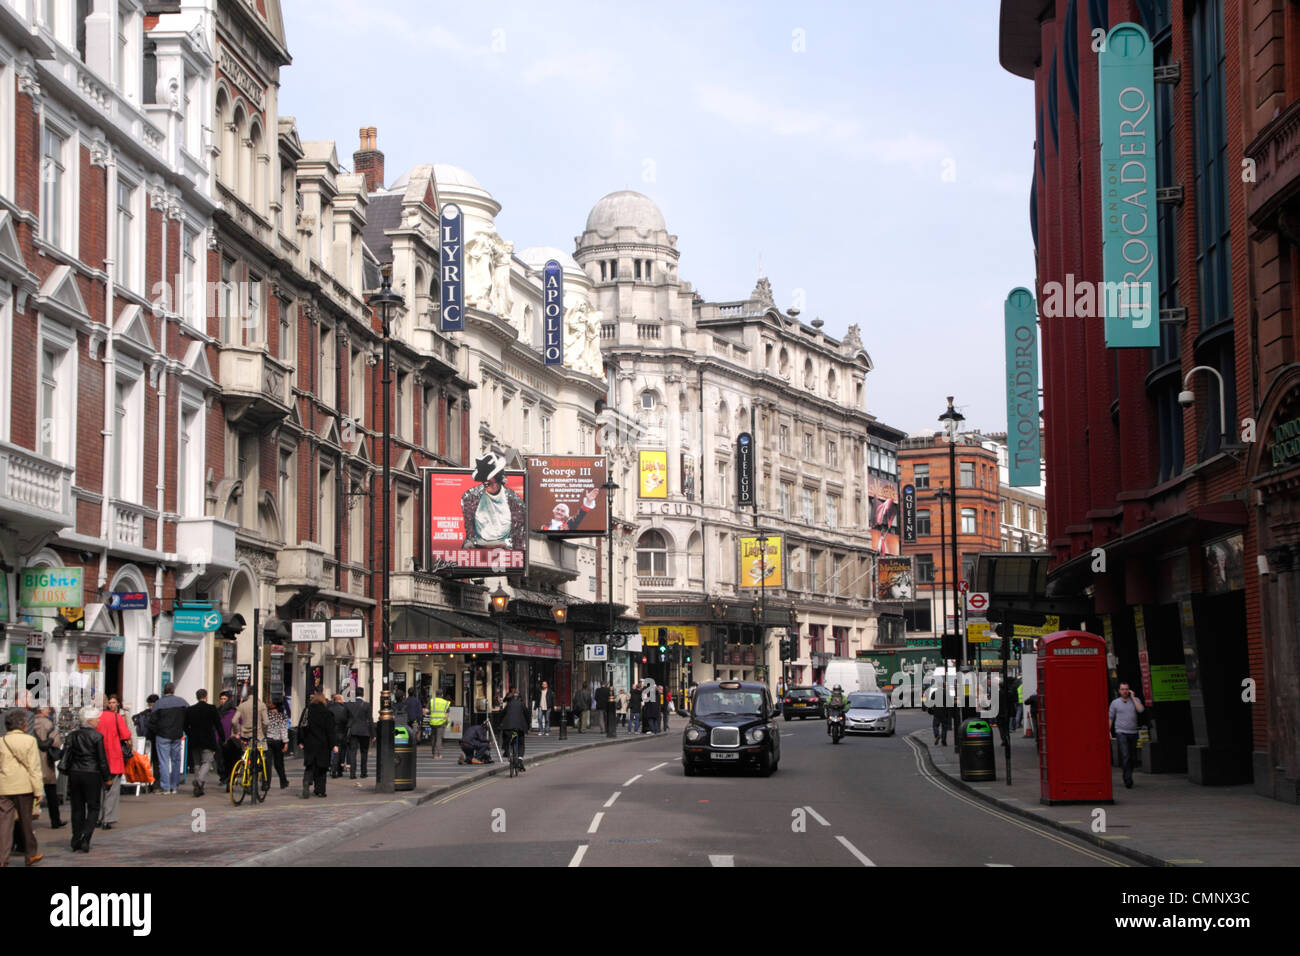 View along Shaftesbury Avenue London - Stock Image